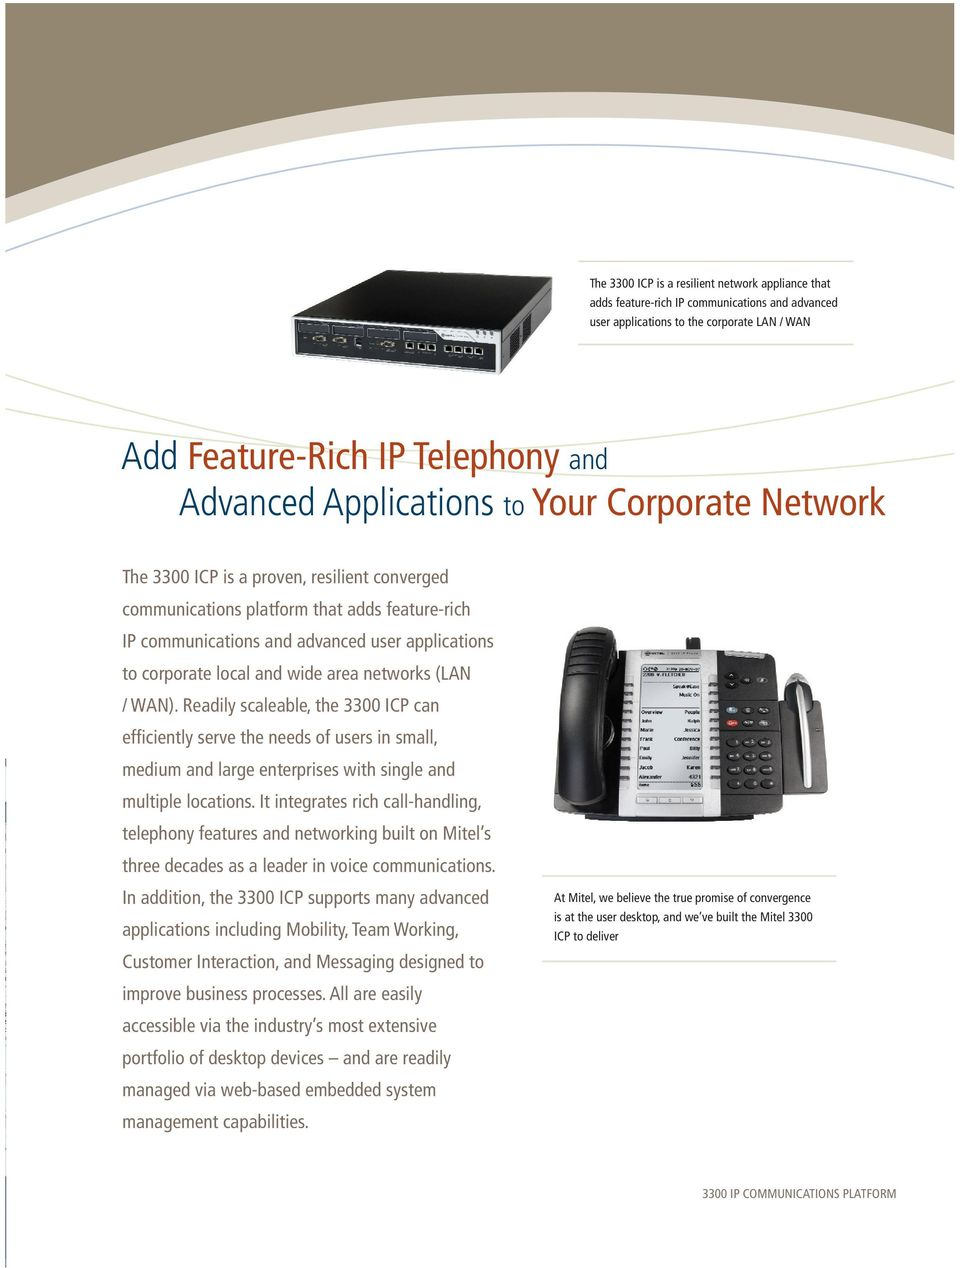 and wide area networks (LAN / WAN). Readily scaleable, the 3300 ICP can efficiently serve the needs of users in small, medium and large enterprises with single and multiple locations.